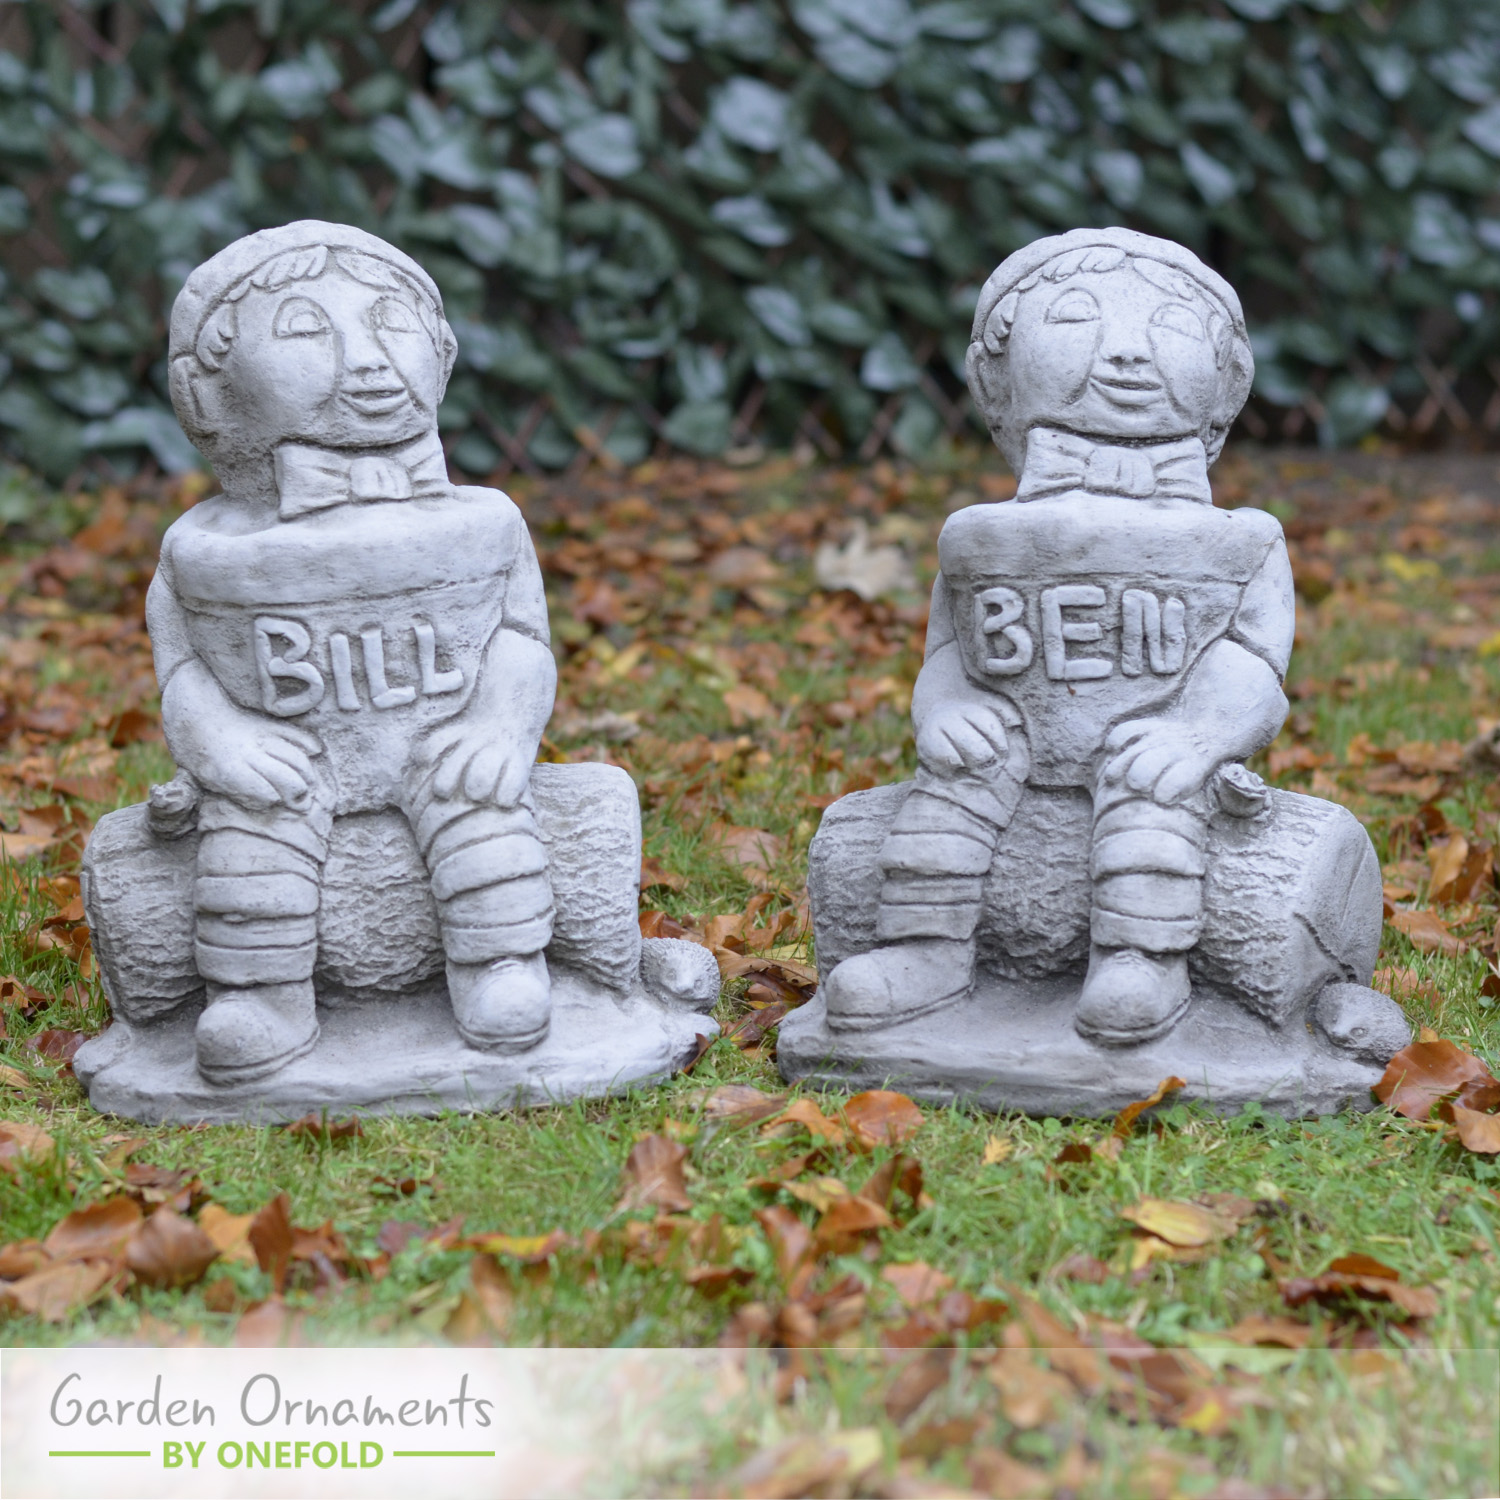 Bill and Ben Garden Statue Ornament 1